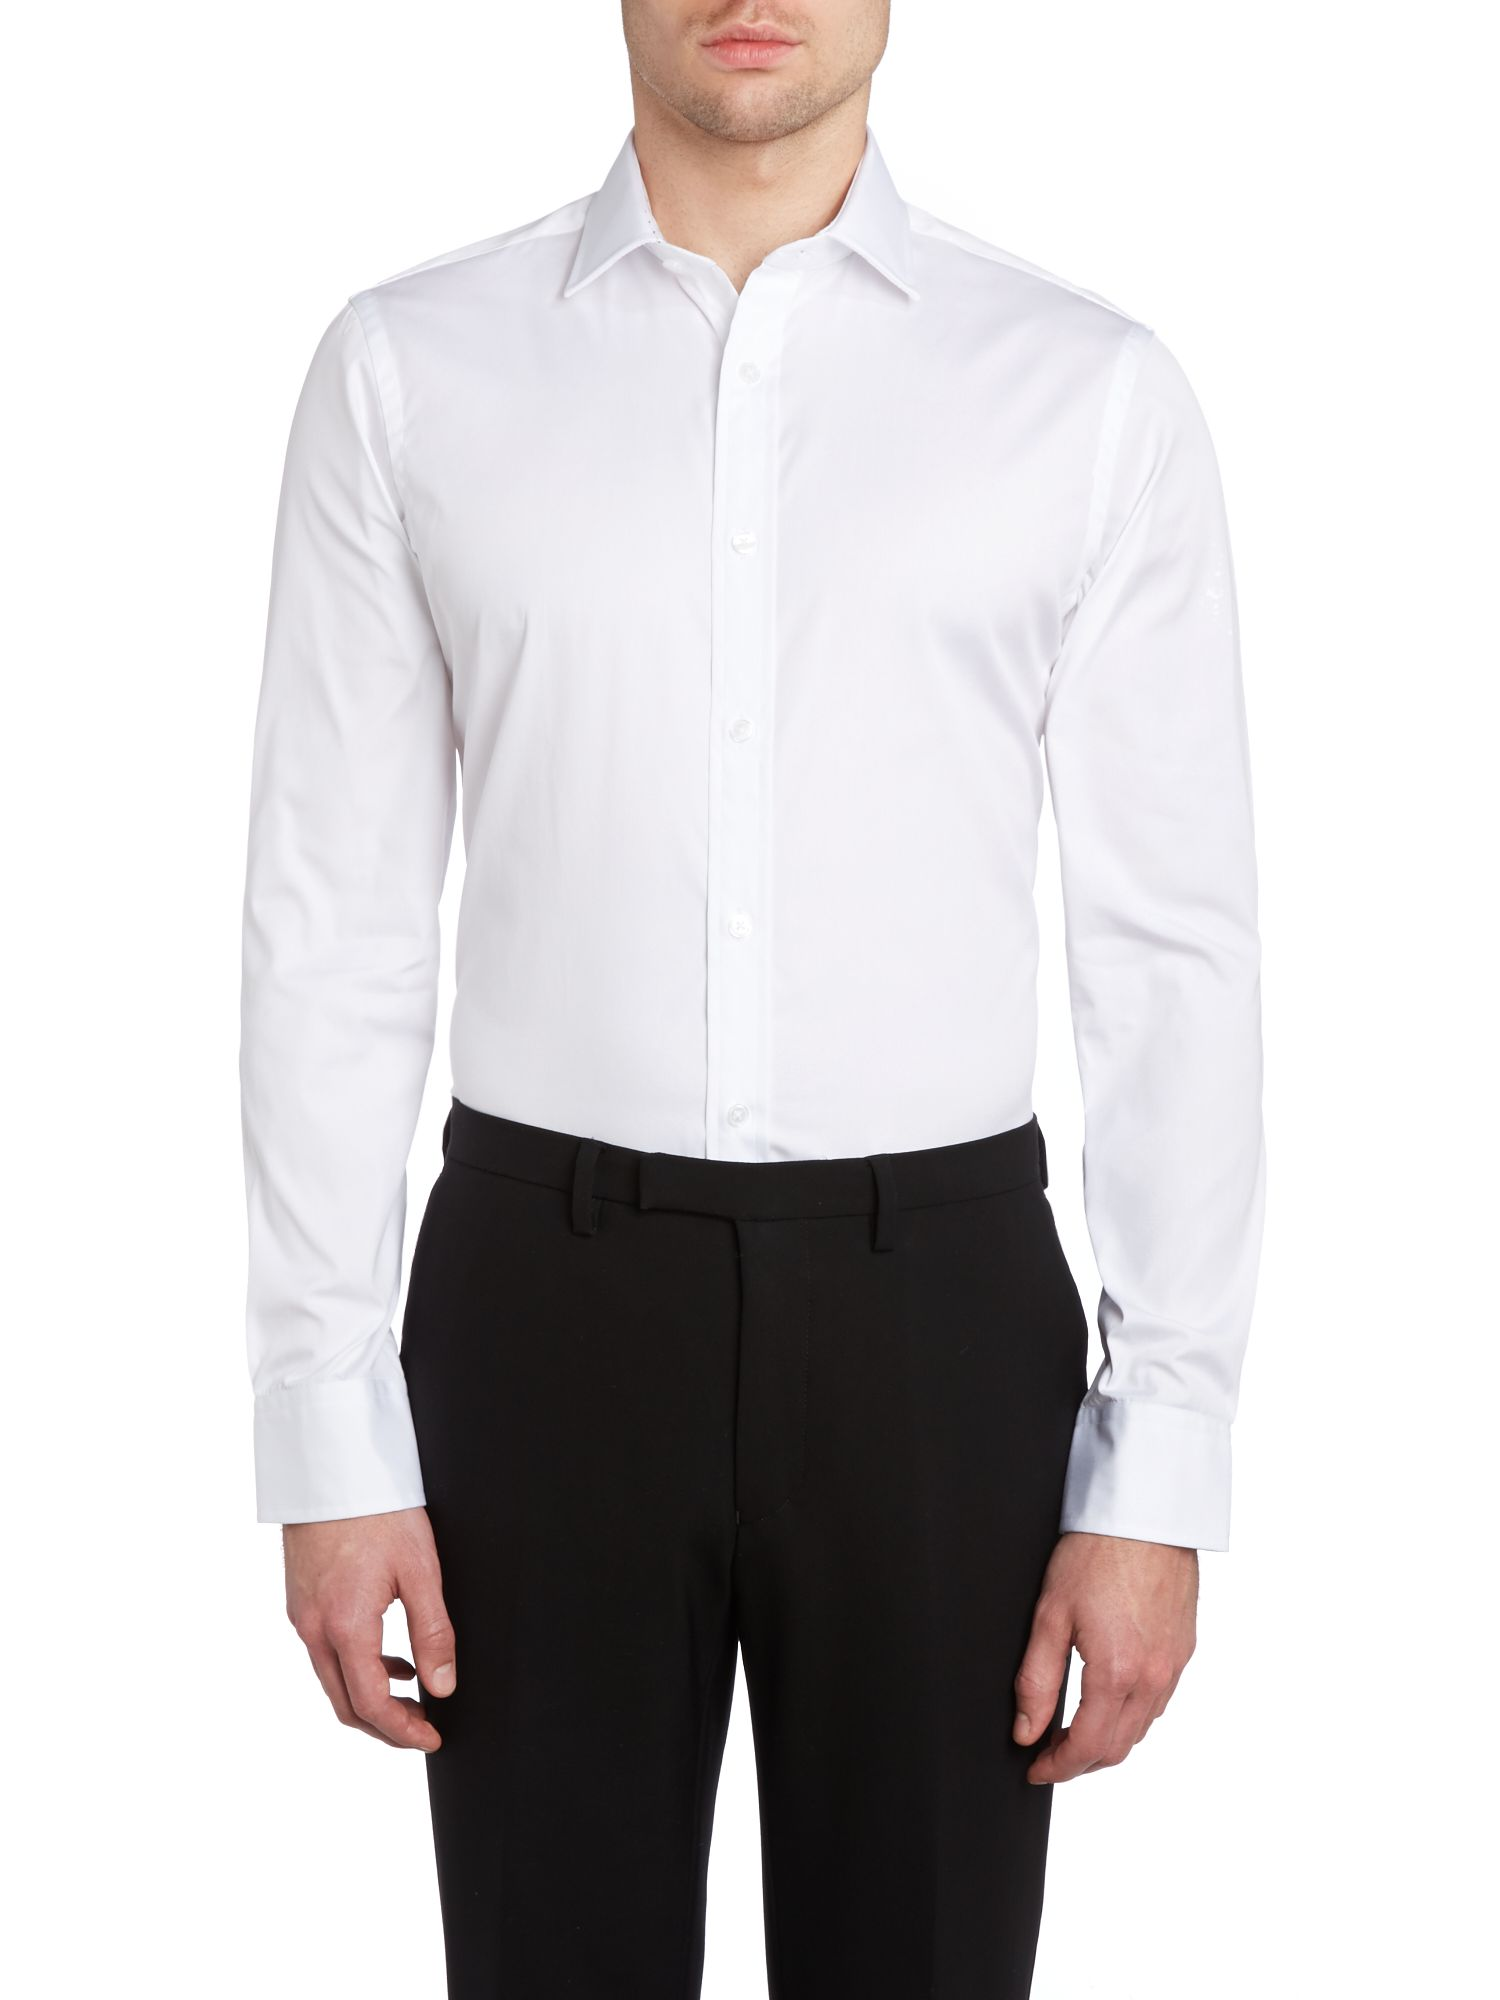 Poplin fully fitted long sleeve shirt